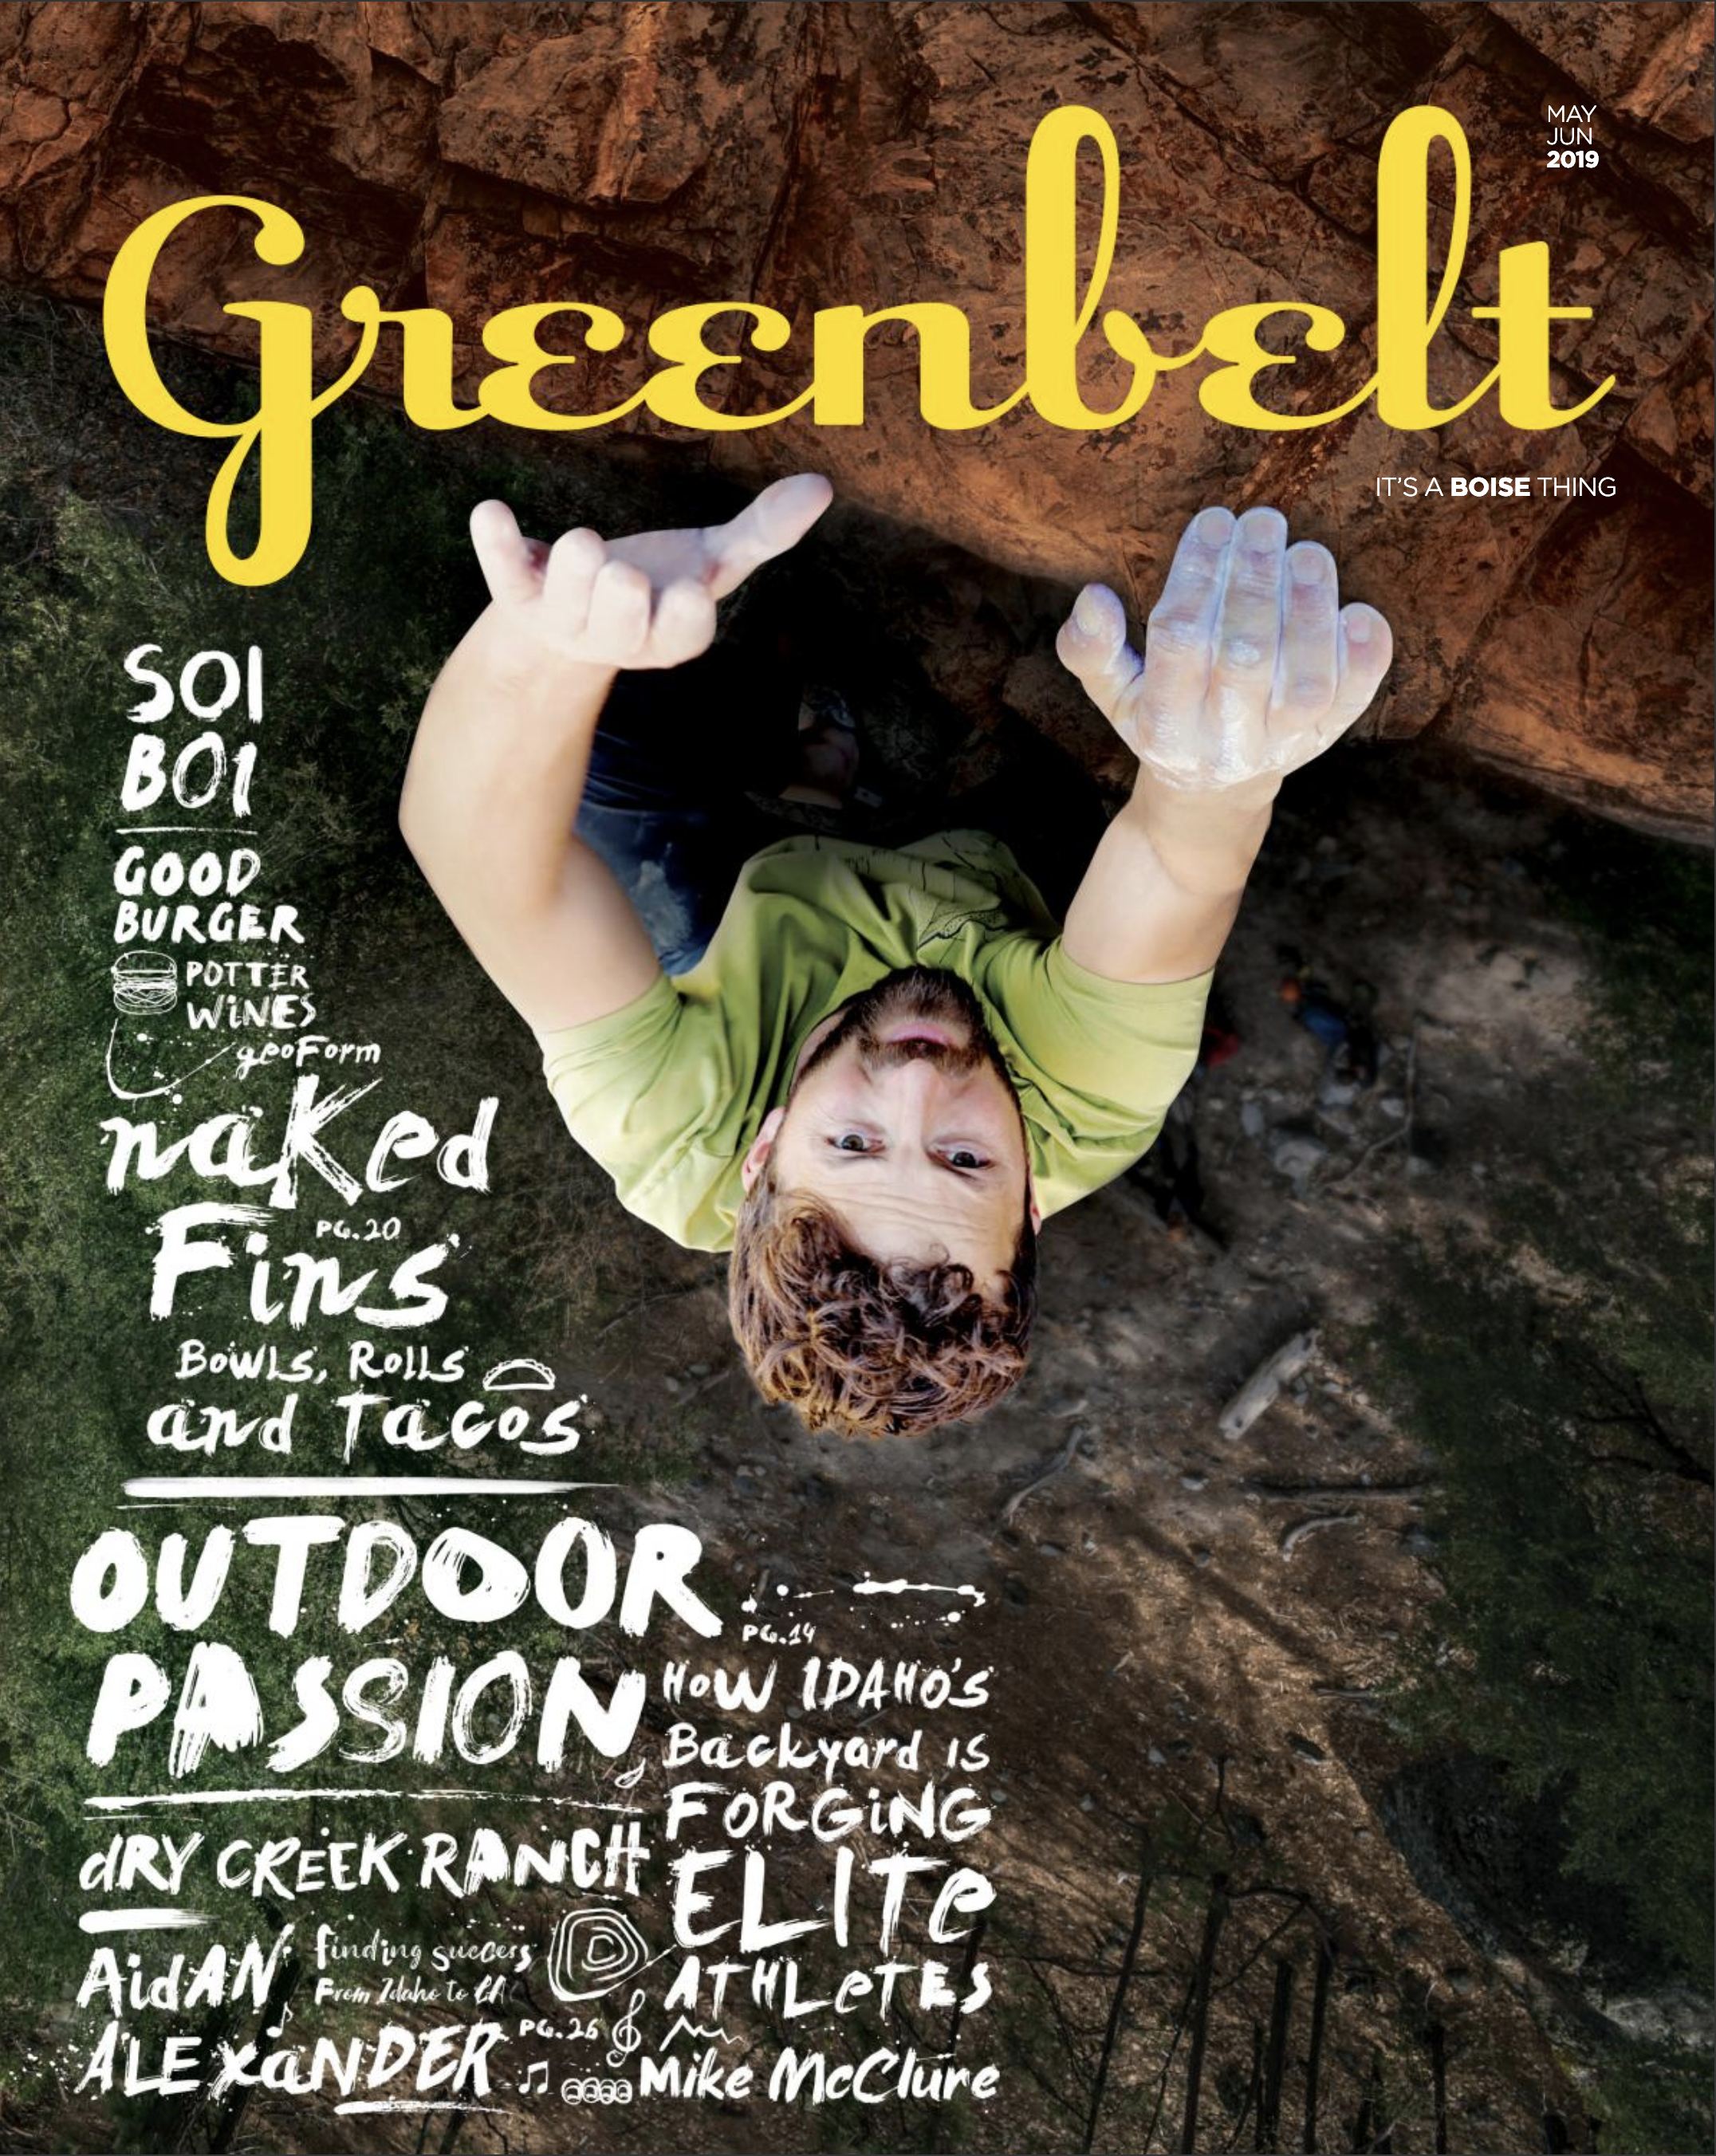 Greenbelt Magazine Food Article and recommendation